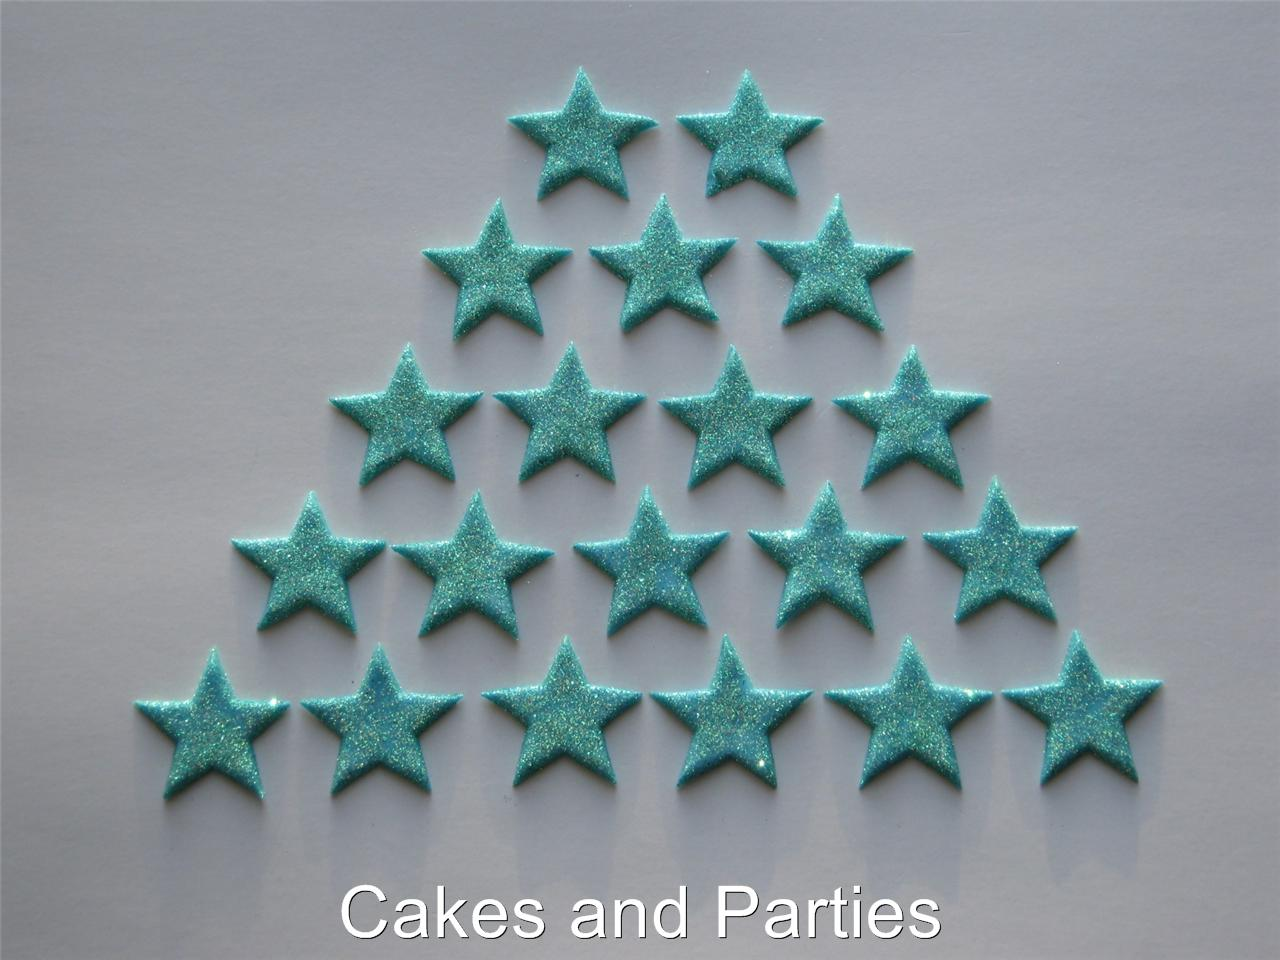 Edible Cake Decorations Stars : 20xEDIBLE GLITTER STARS. CAKE DECORATIONS - VARIOUS ...